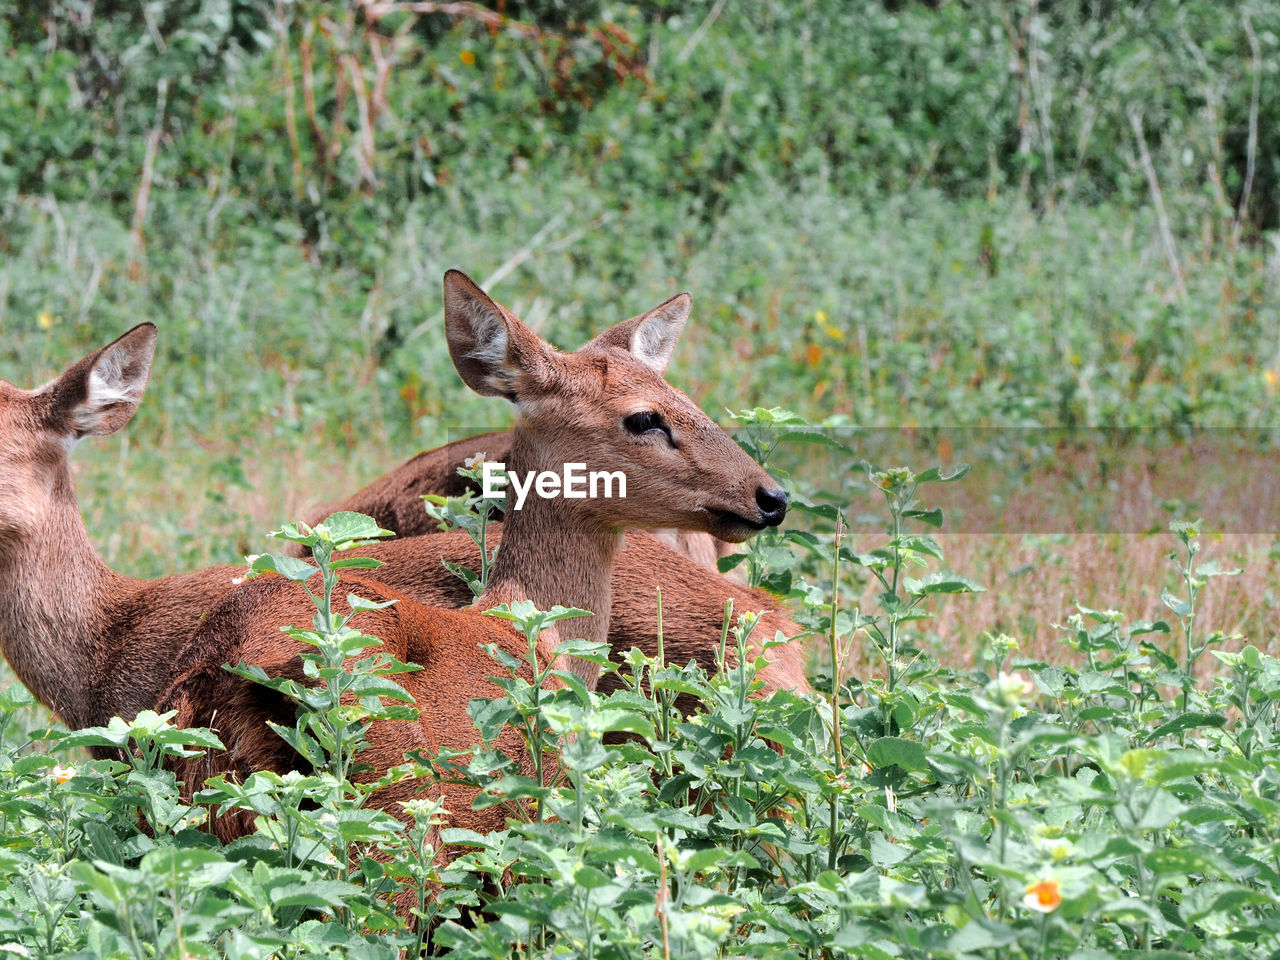 animal, animal themes, animal wildlife, mammal, animals in the wild, plant, vertebrate, one animal, nature, no people, deer, land, day, domestic animals, brown, beauty in nature, young animal, forest, fawn, outdoors, herbivorous, animal family